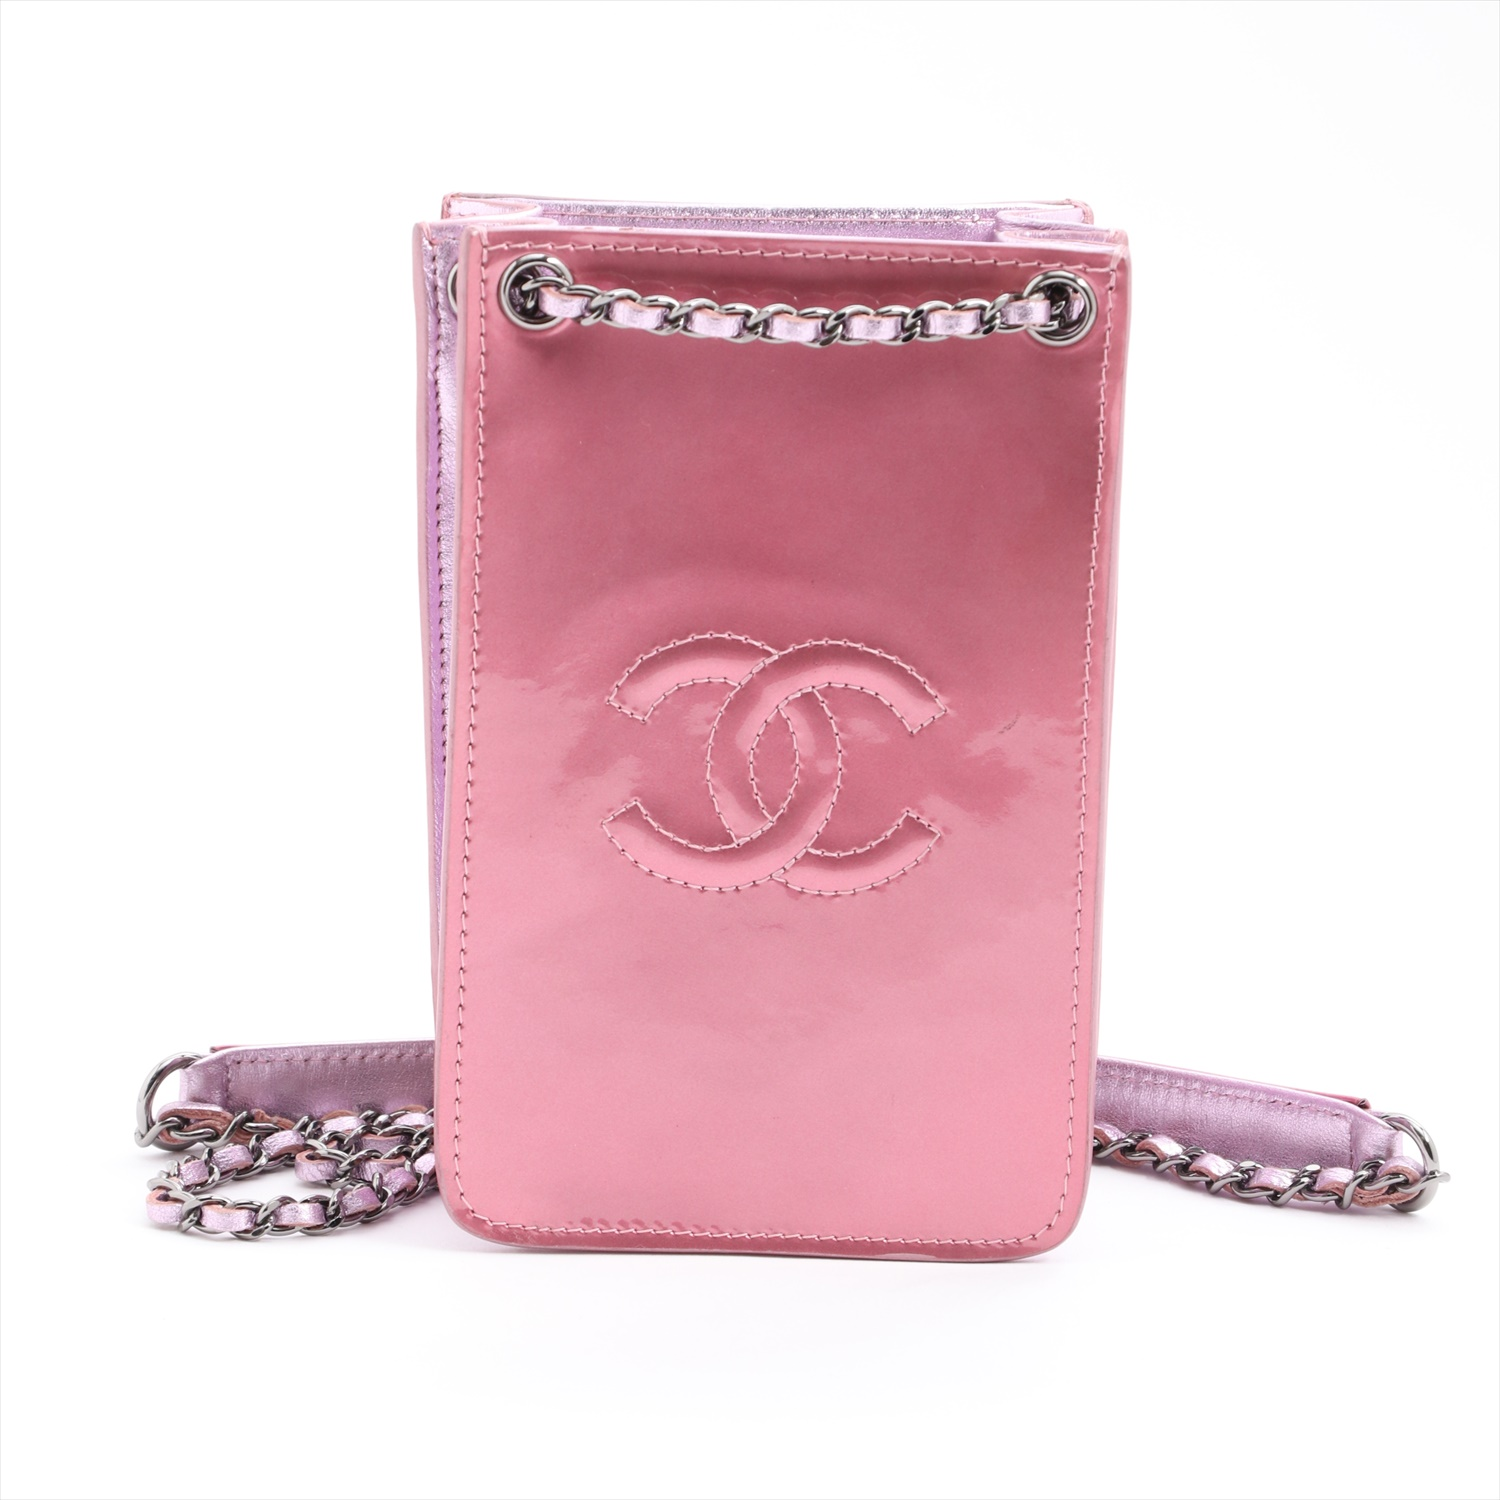 [Used goods] Chanel Coco mark patent leather sporran chain pink 19 series